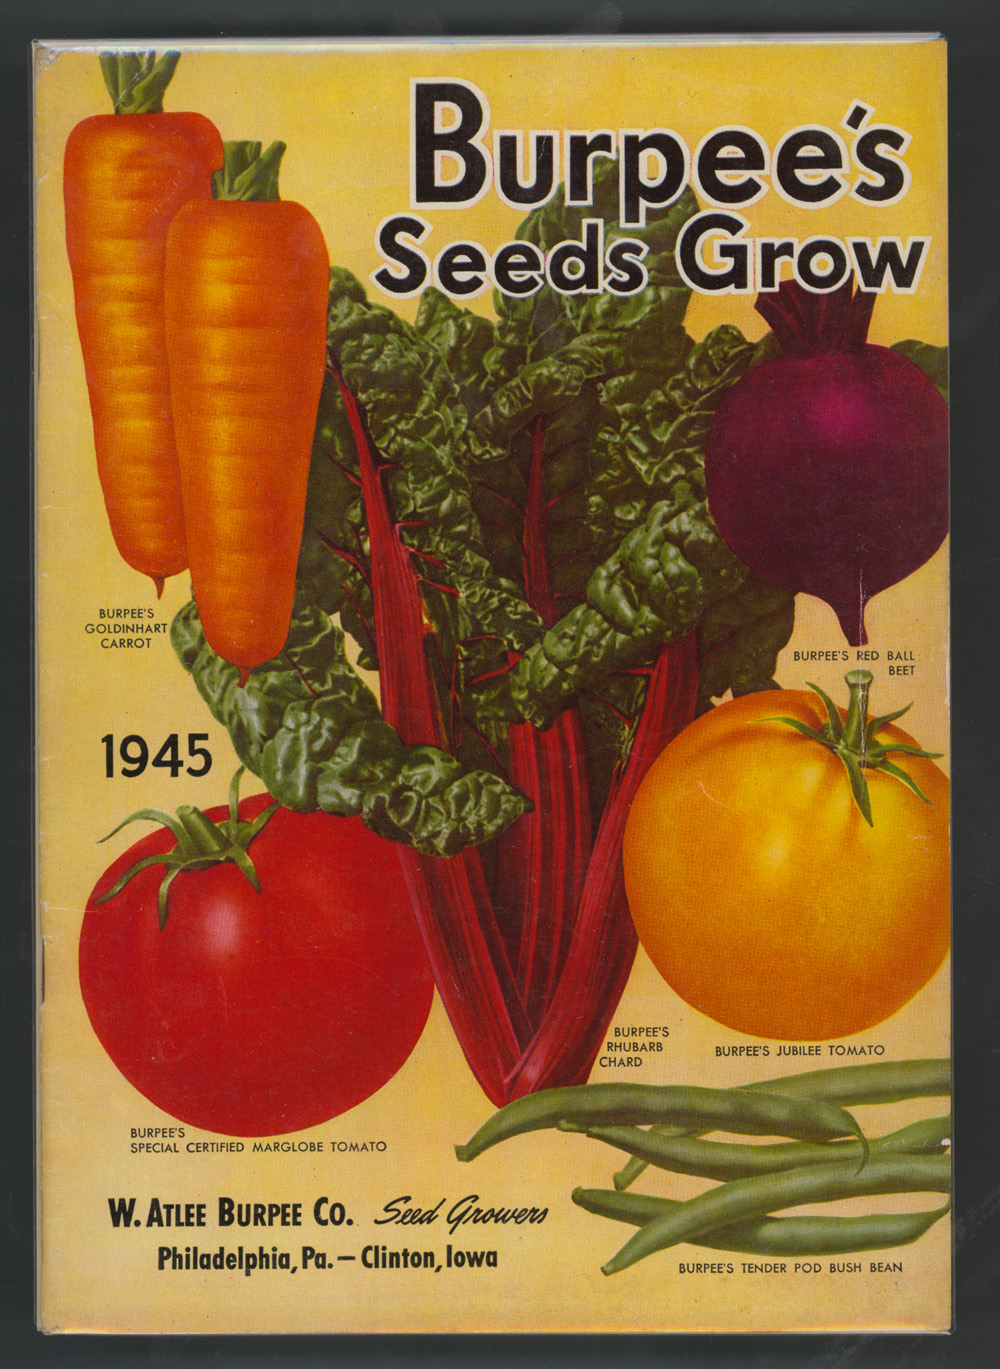 Burpee Seeds Catalog by Burpee. Staple Bound. $ (1 used & new offers) Burpee Seeds Catalog by Burpee. Staple Bound. $ (2 used & new offers) BURPEE SEEDS Seventy Fifth Anniversary Catalog by Anonymous. Currently unavailable. Burpee Bulbs for Fall Planting Nursery Catalog.